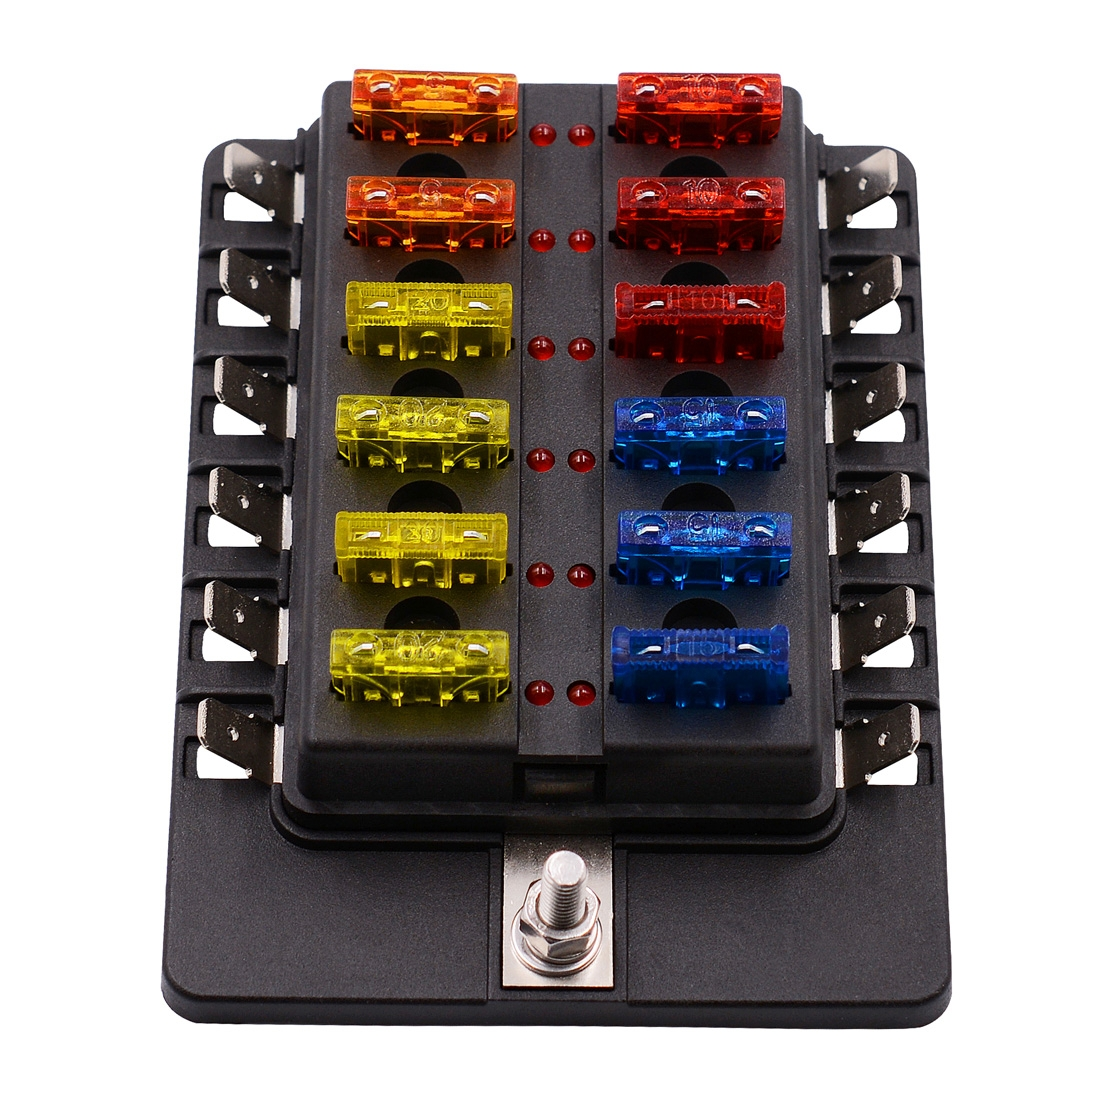 1 In 12 Out Fuse Box Pc Terminal Block Fuse Holder Kits With Led Warning Indicator For Auto Car